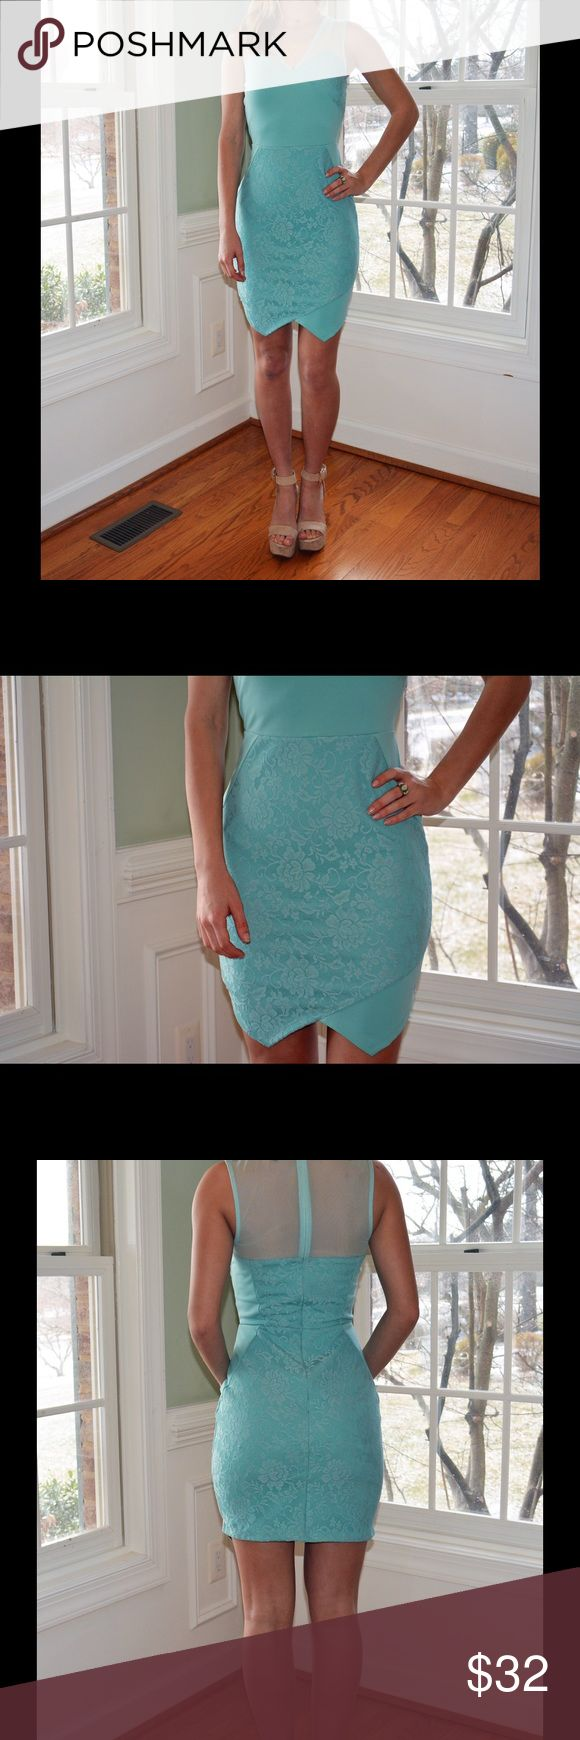 TOPSHOP mint green lace bodycon dress A beautiful mint green lace bodycon dress with a closed mesh back. It is a size 4 in Topshop but it can definitely fit sizes 2-4. It would be more like a midi dress for people 5'4 under and a mini dress probably 5'6 and above                   Stats:  5'3 112 lbs 32-24-36  ****Everything is final sale. Please make sure you comment if you any have specific questions about fit, comfort etc.**** Topshop Dresses Midi